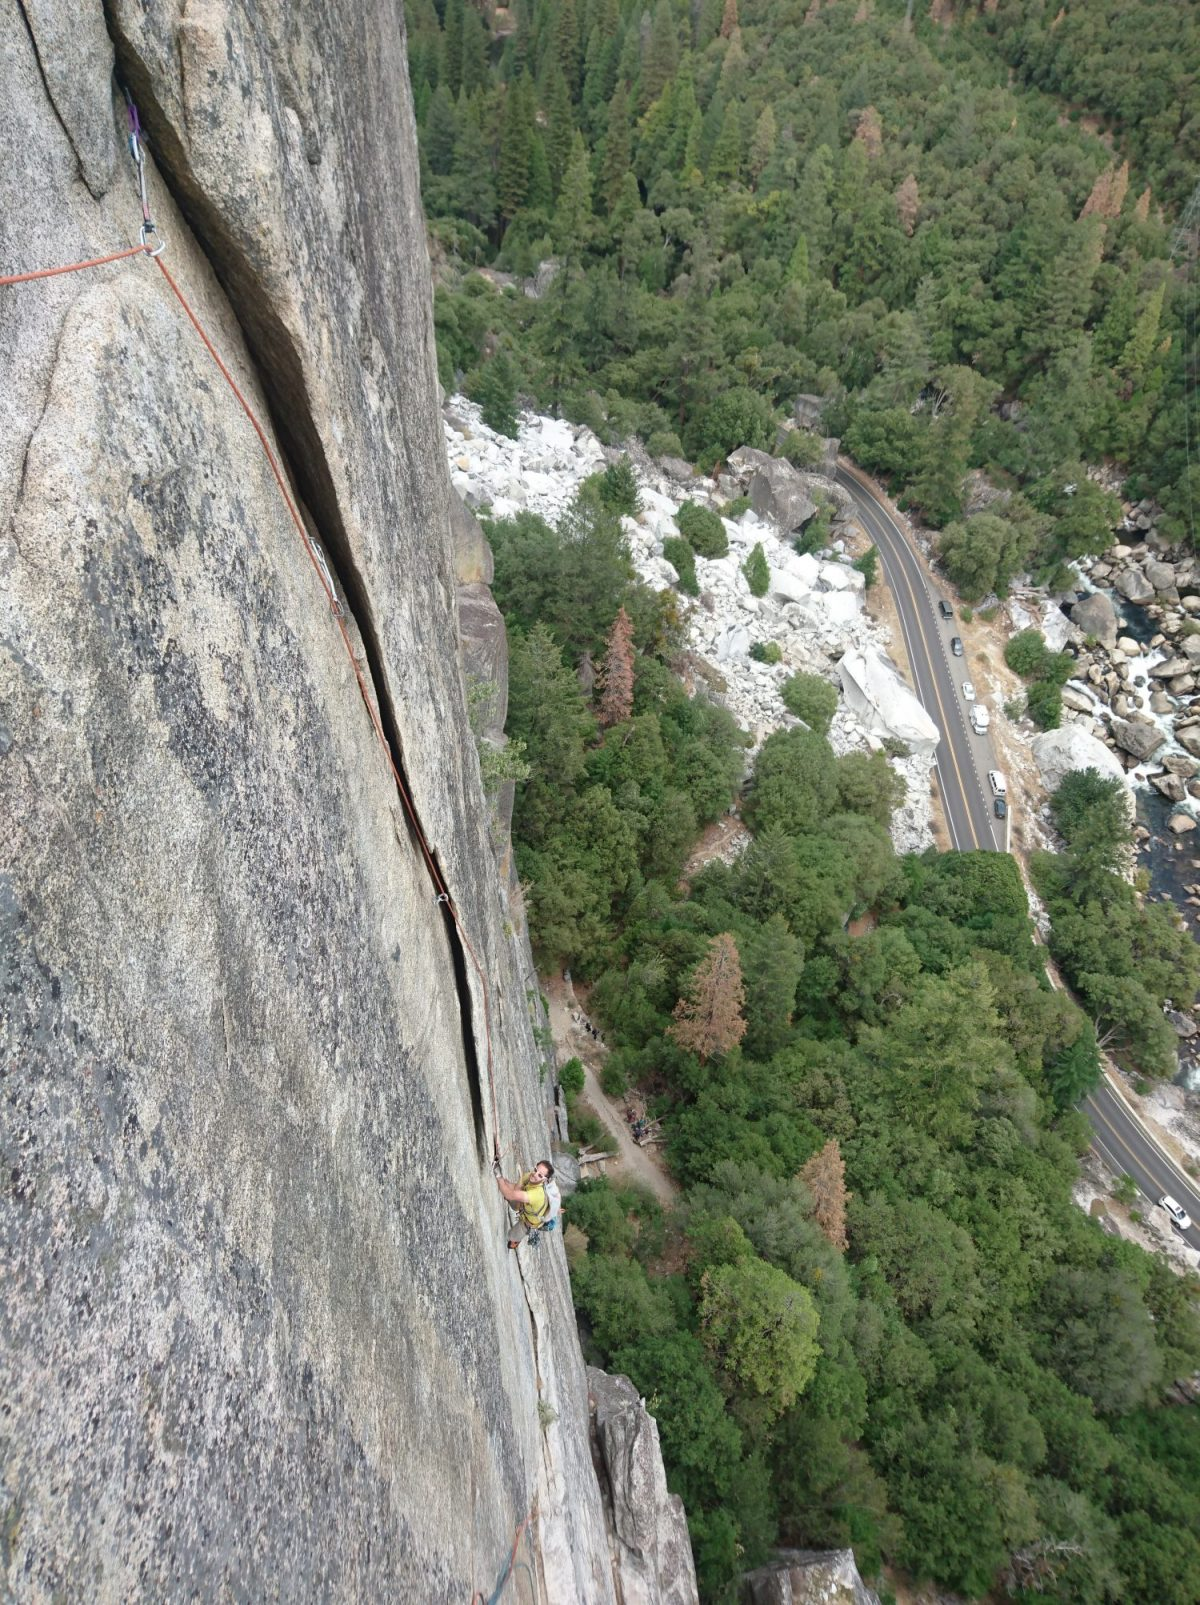 rock climbing, Yosemite, Mountaineering course, Chamonix ski guide, haute route, chamonix climbing, Chamonix freeride, Chamonix mountain guides, Swiss mountaineering